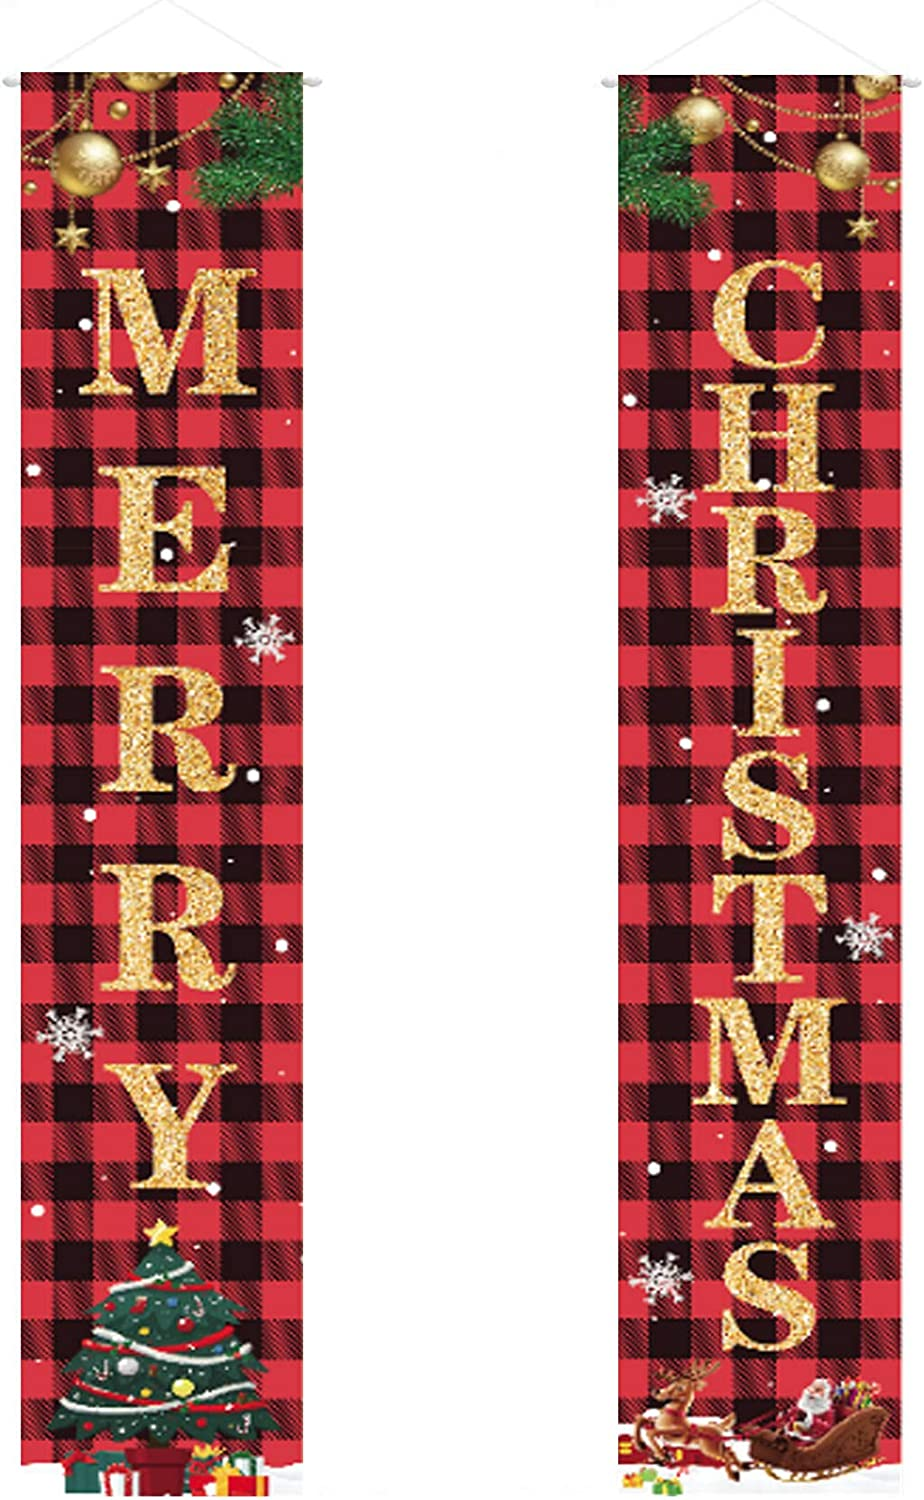 Merry Christmas Porch Welcome Sign Decor Banner Set Xmas Hanging Lovely Cartoon Decorations for Home Front Door Yard Indoor Outdoor Holiday Party